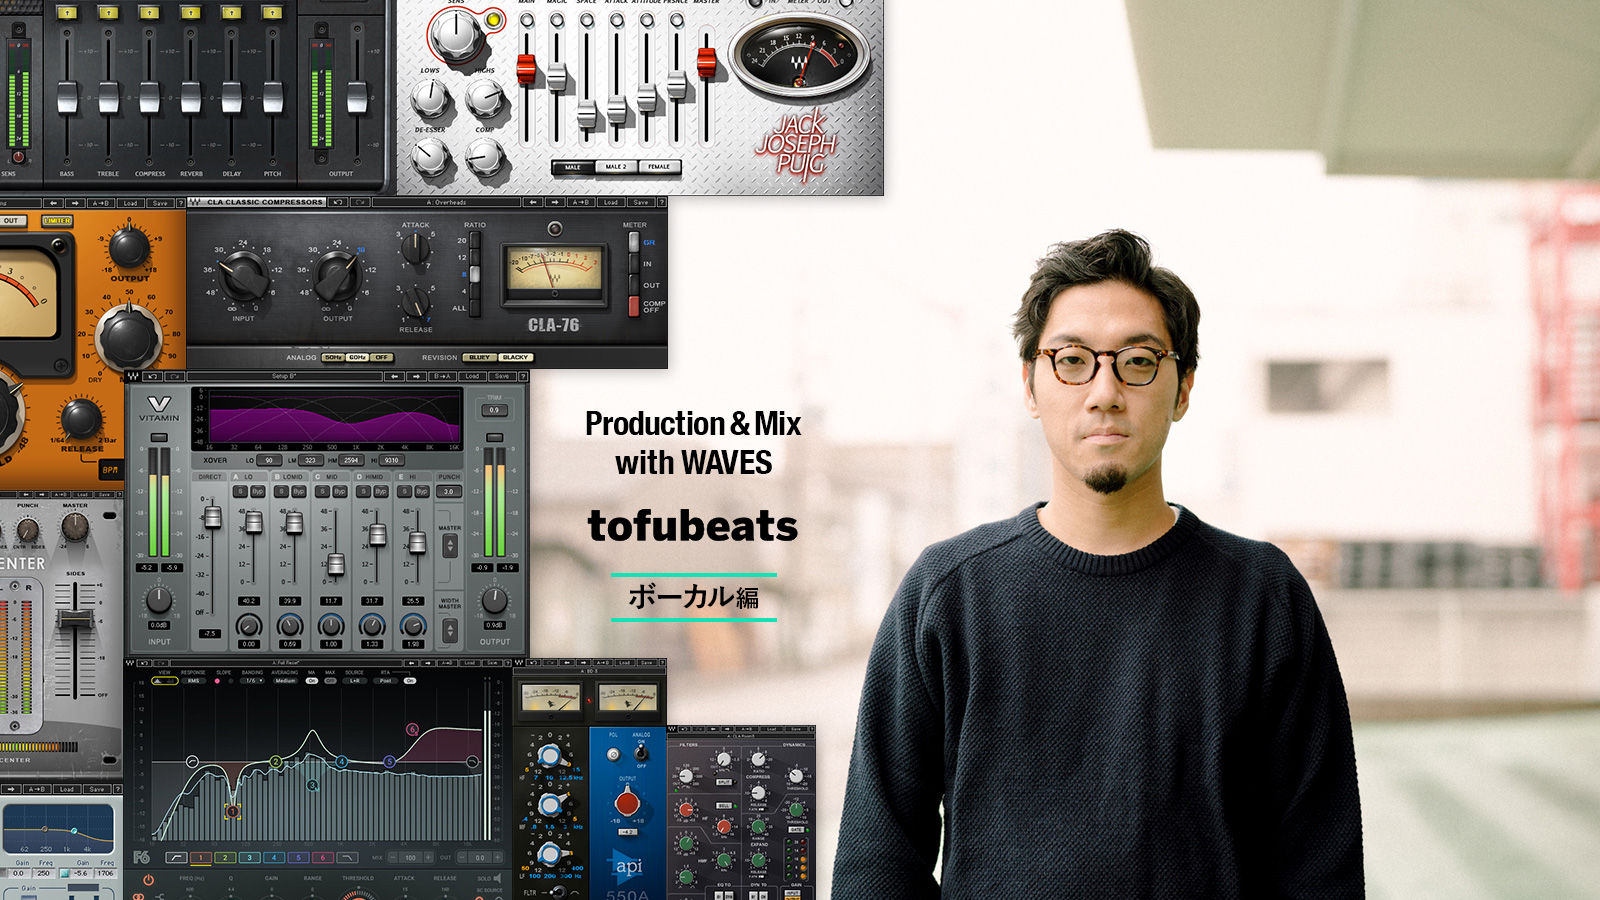 Production & Mix with WAVES – tofubeats #1 ボーカル編